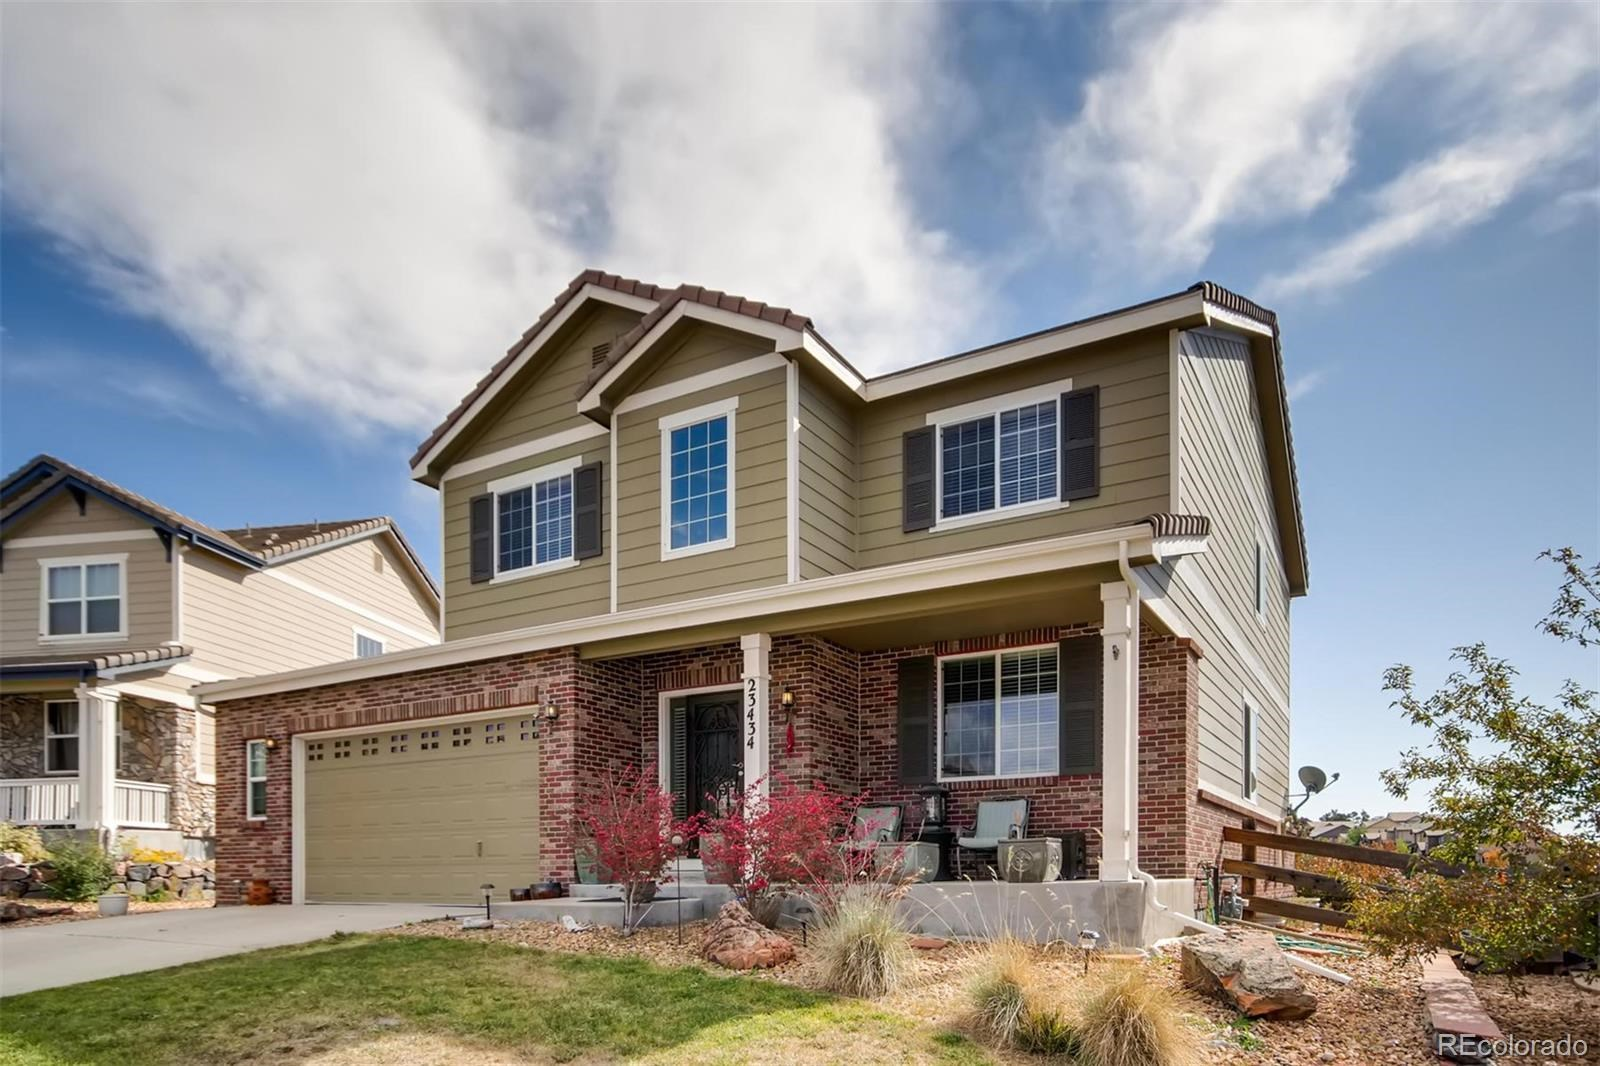 MLS# 9982996 - 23434 E Ontario Place, Aurora, CO 80016